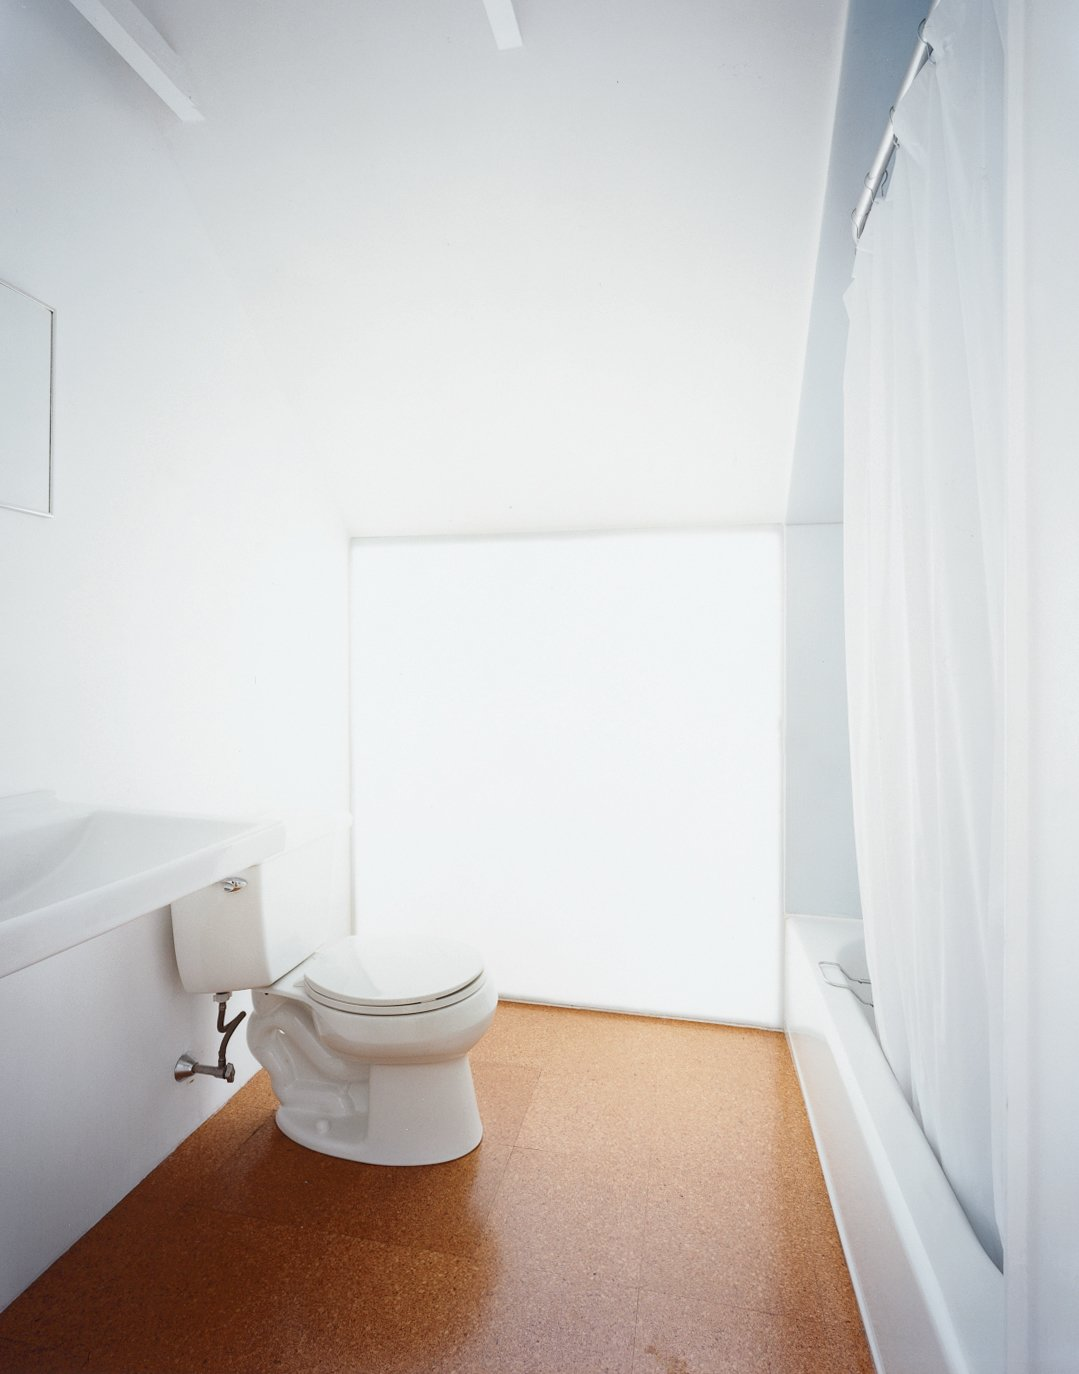 Upstairs, simple porcelain pieces such as a Kohler toilet adorn the modest master   bathroom. Beneath the downward-pitched ceiling, a polycarbonate-panel wall brings in light from the south-facing skylight behind.